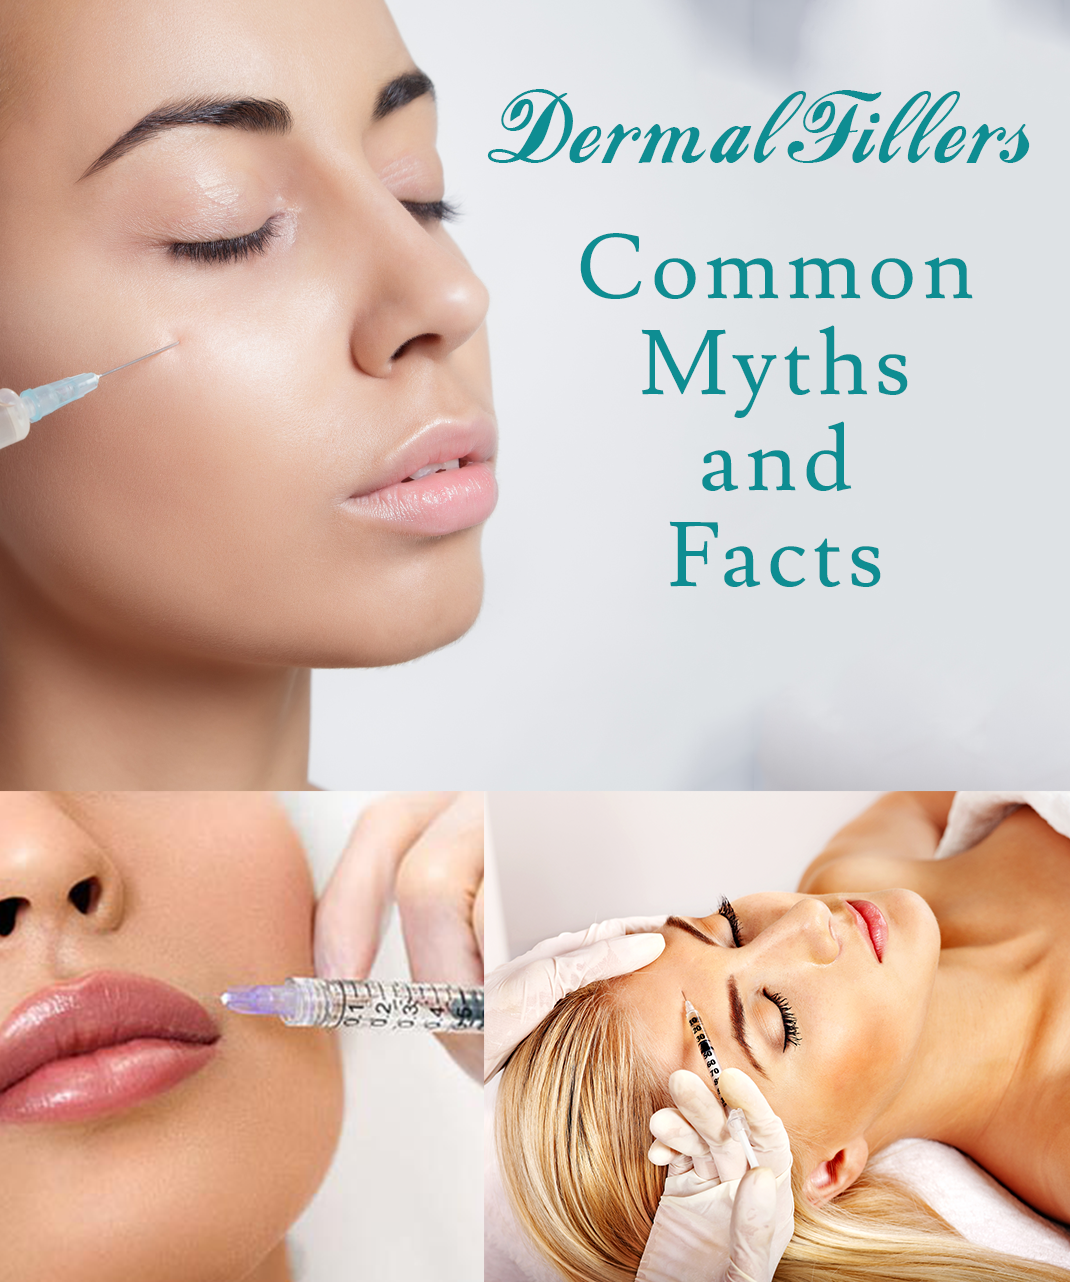 Your Best Friend Swears By The Benefits Of Dermal Fillers But You